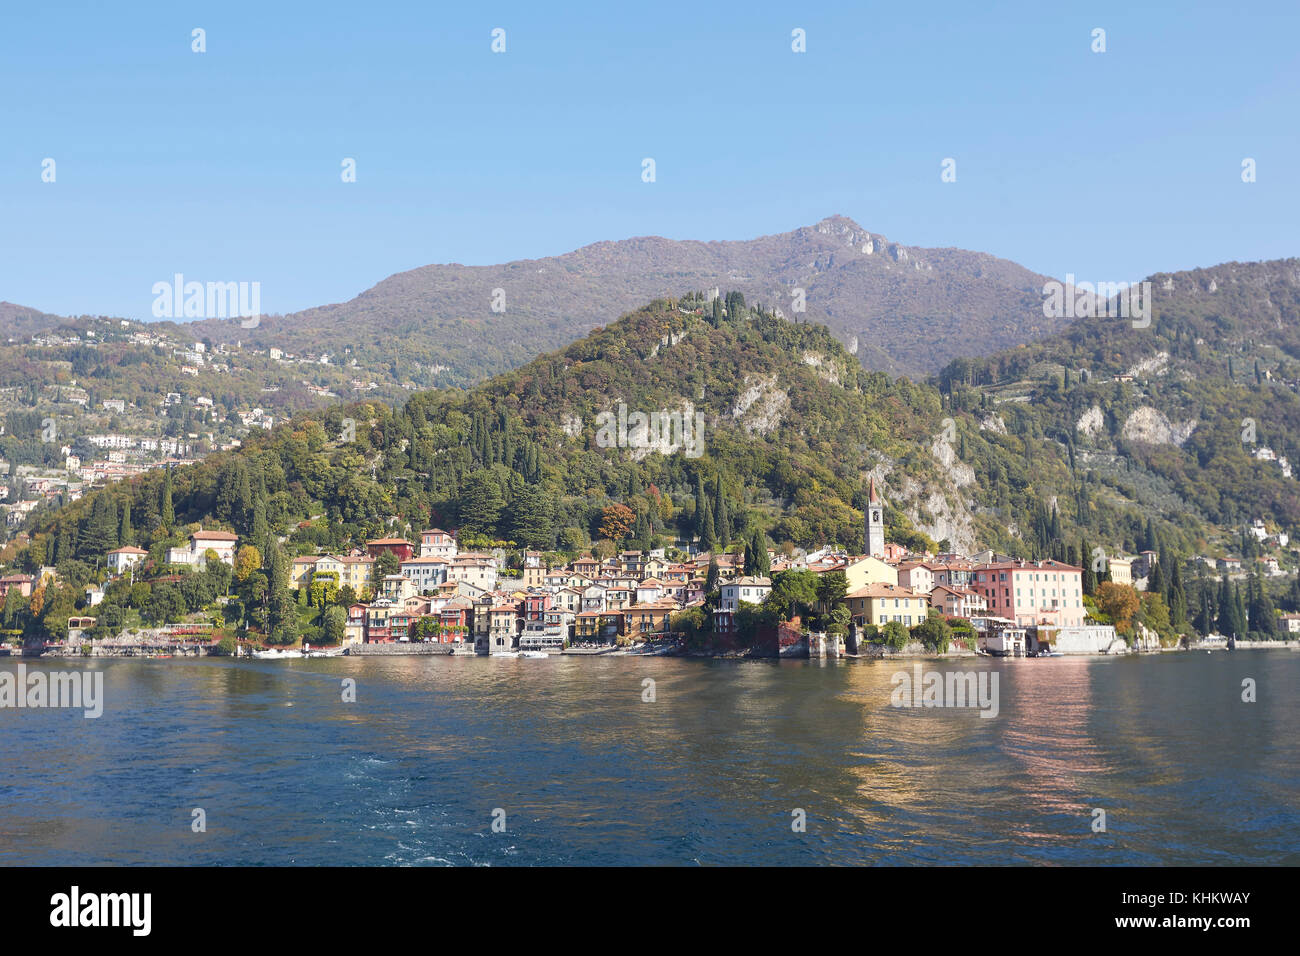 The waterfront of Varenna on the shore of Lake (Lago) Como, Lecco Lombardy, Italy - Stock Image